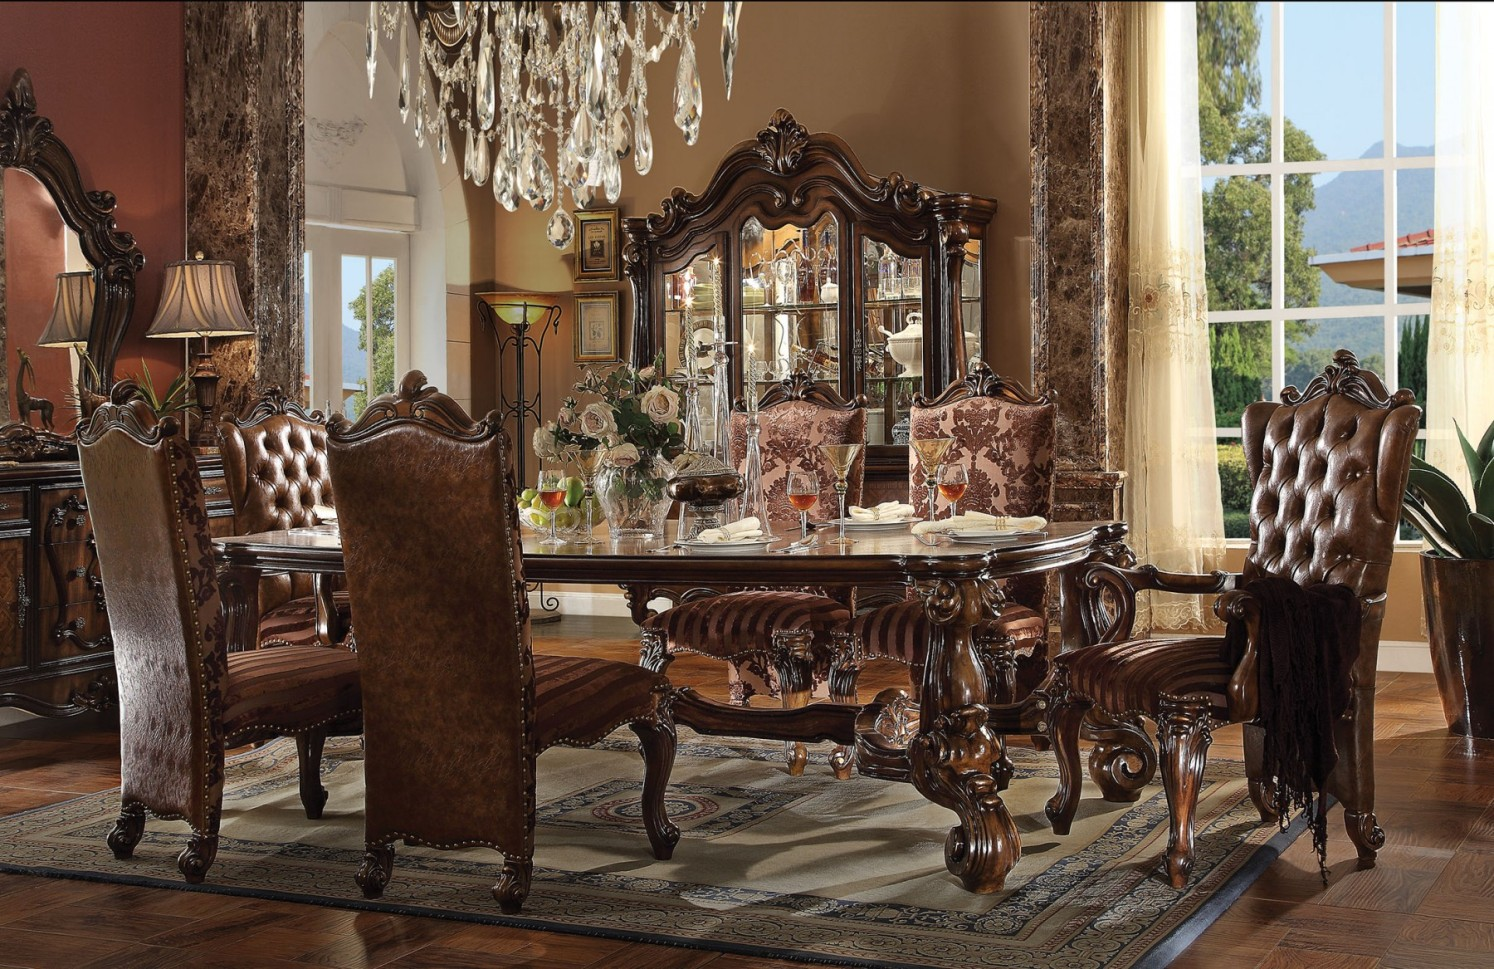 Formal dining room sets how elegance is made possible for Formal dining room sets